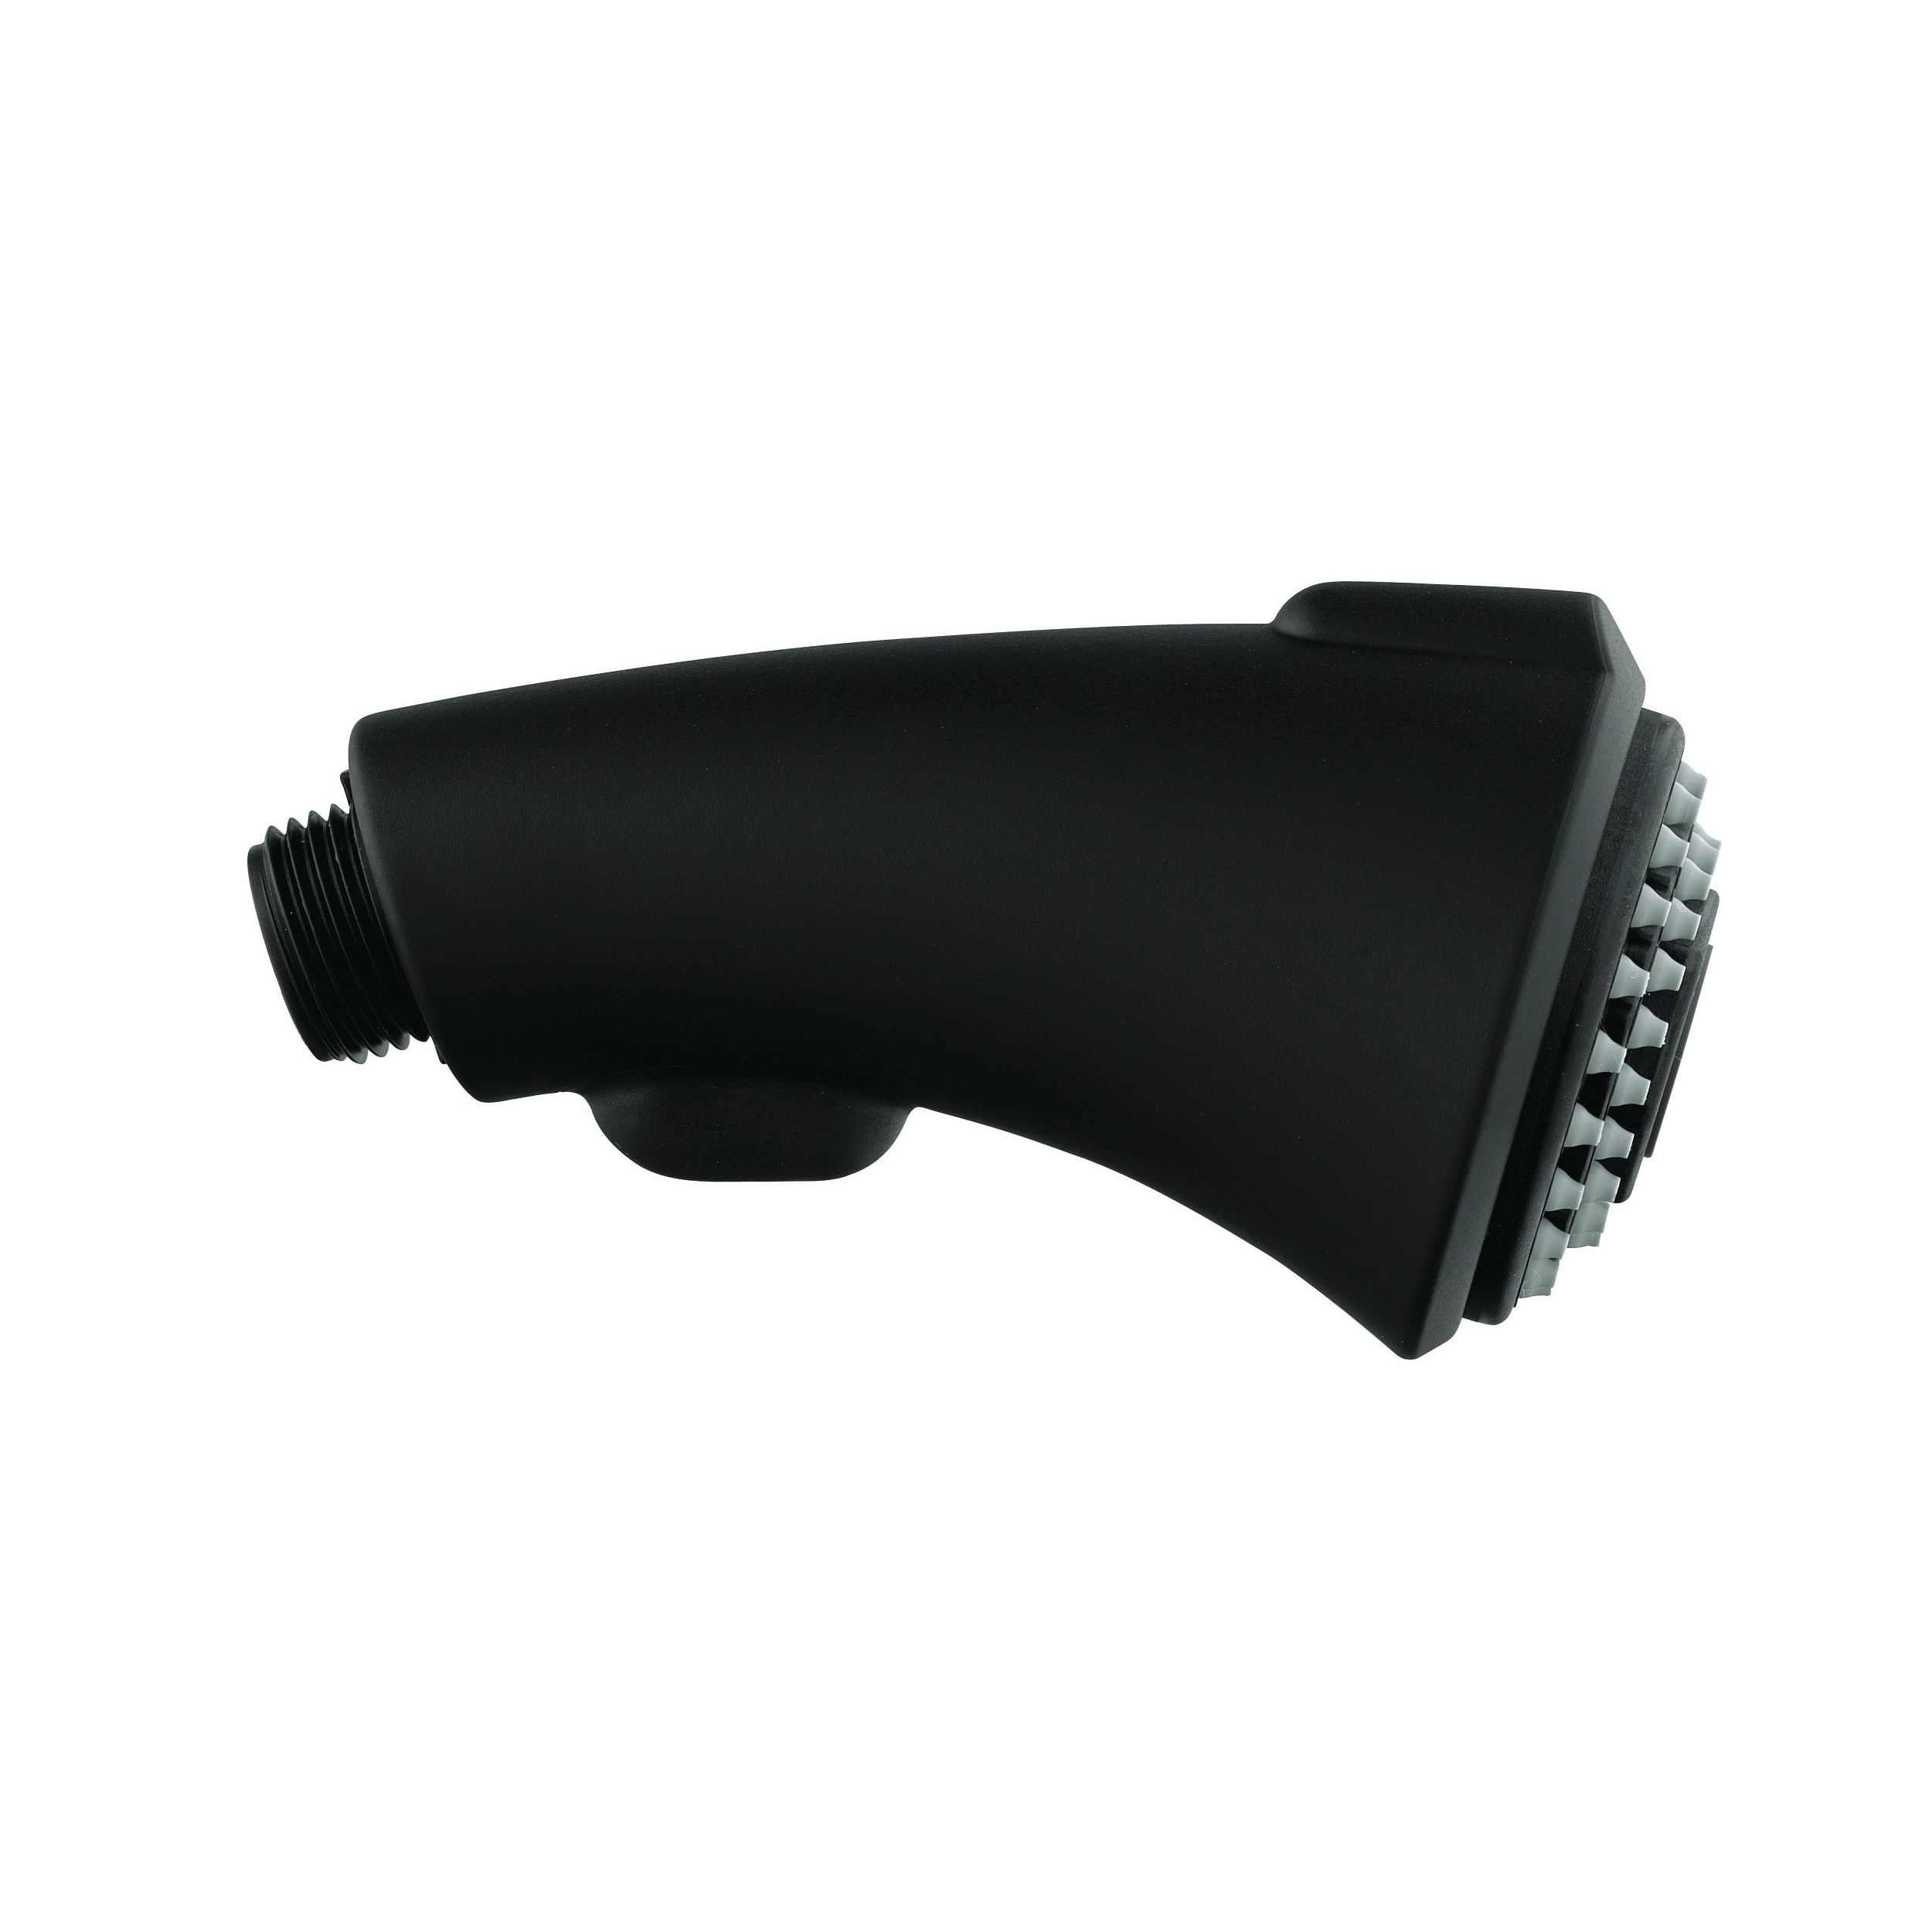 GROHE 46173KH0 Pull-Out Spray, For Use With LadyLux™ Cafe 33755 Hand Shower, Black Head, Import